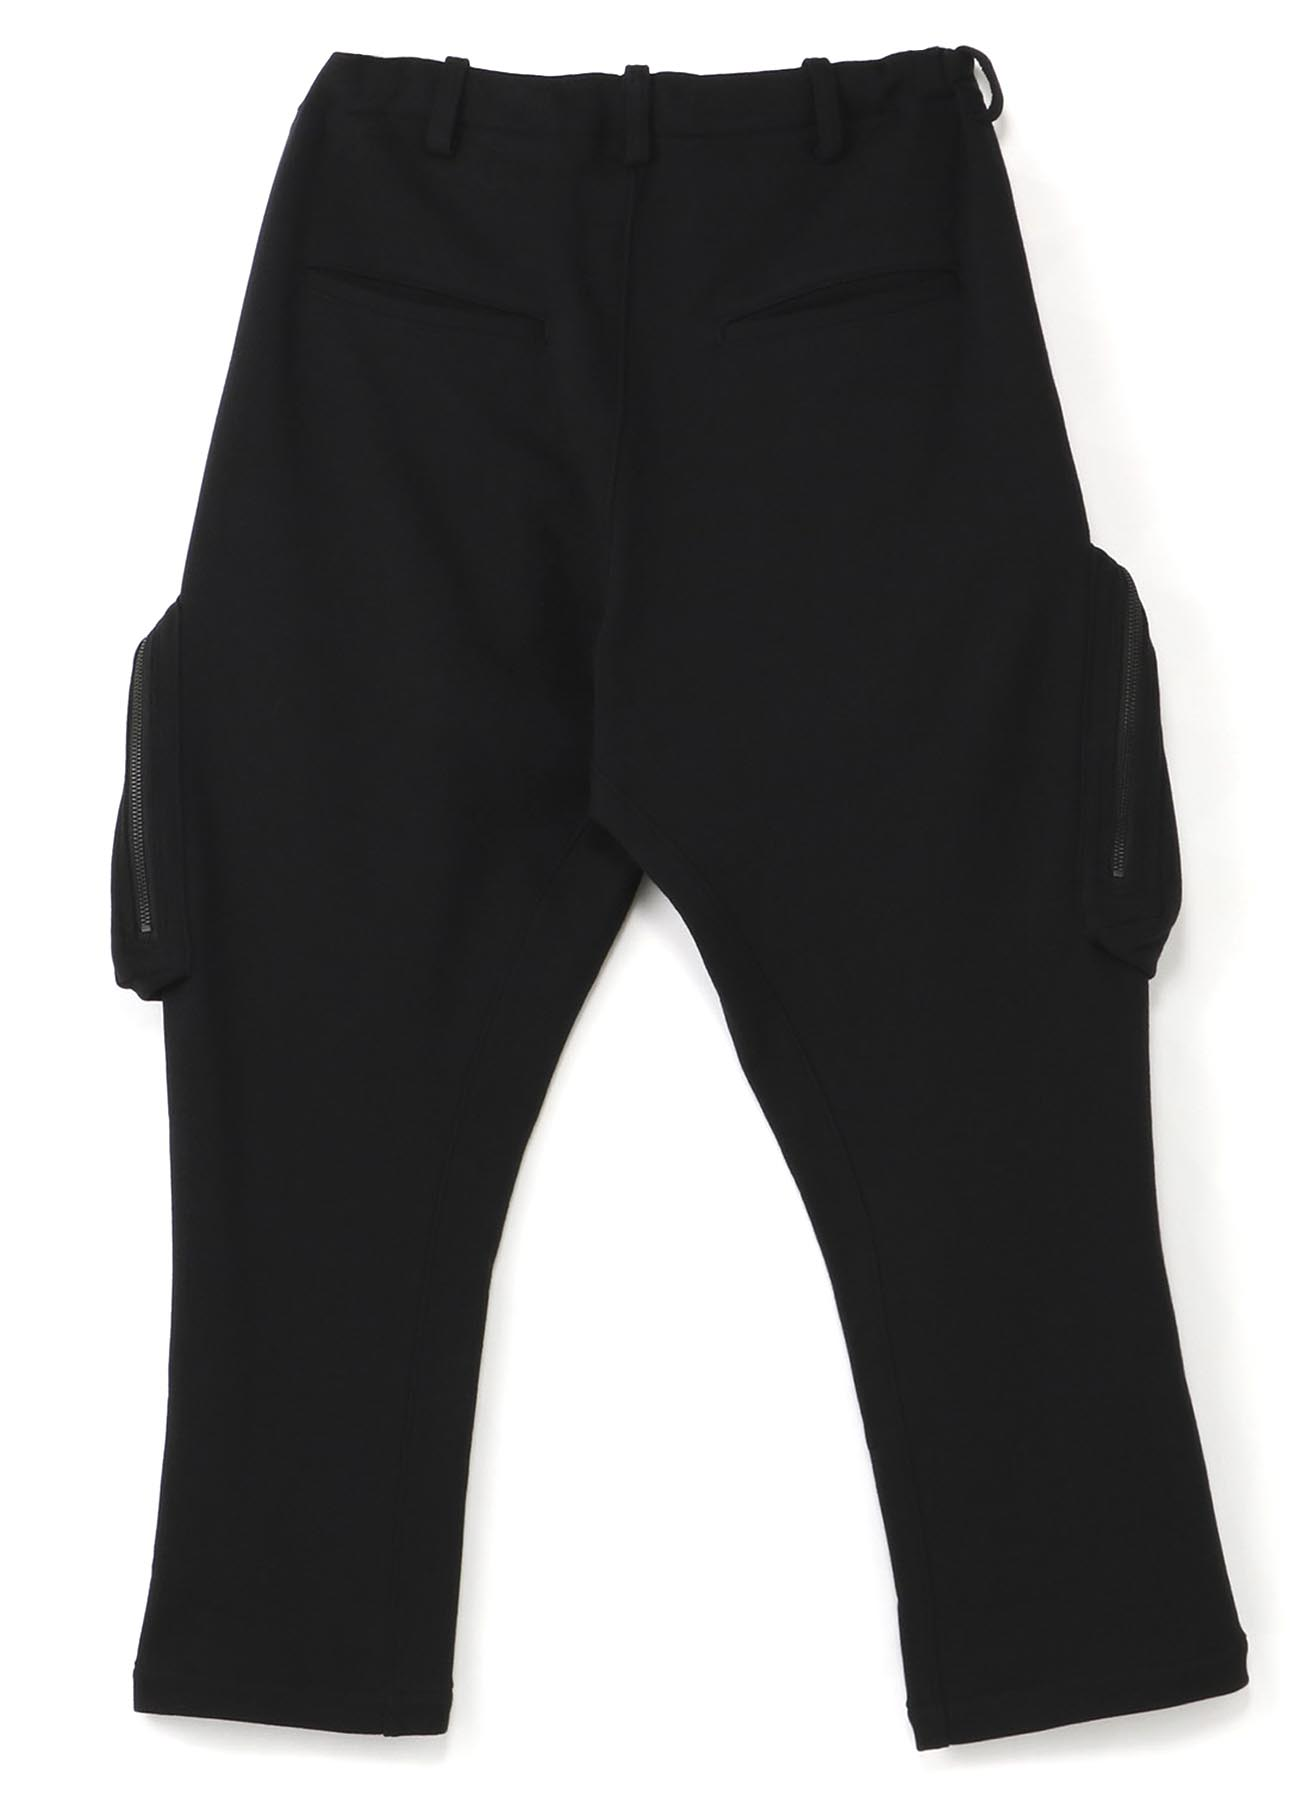 French Terry Stitch Work Tactical Cargo Pants